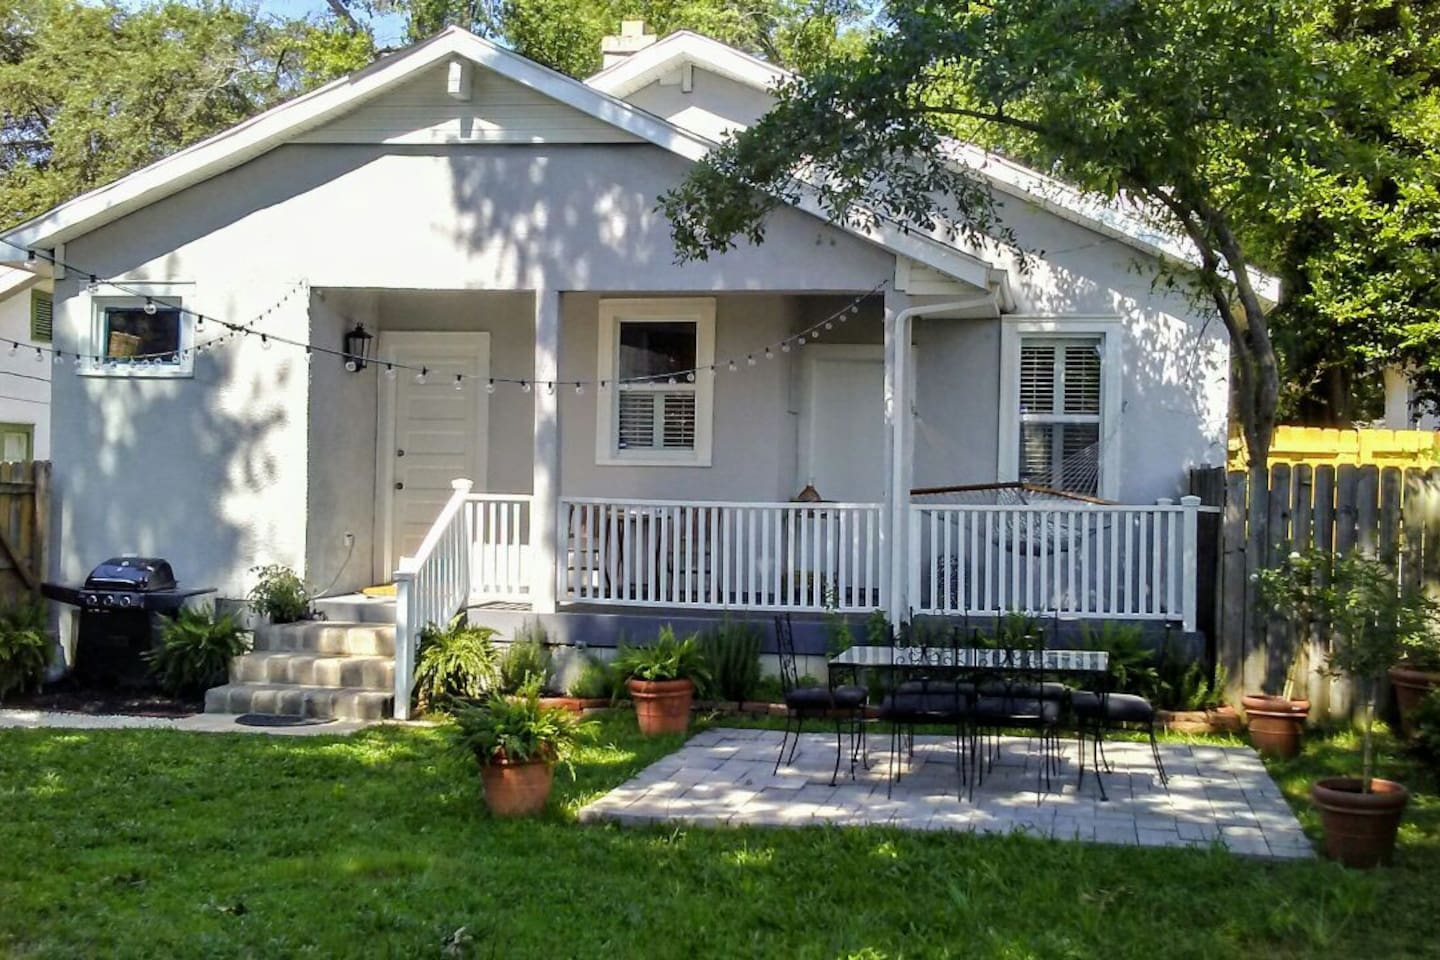 Southern siding augusta ga - Southern Charm Cottage Available Master S 2018 Houses For Rent In Augusta Georgia United States